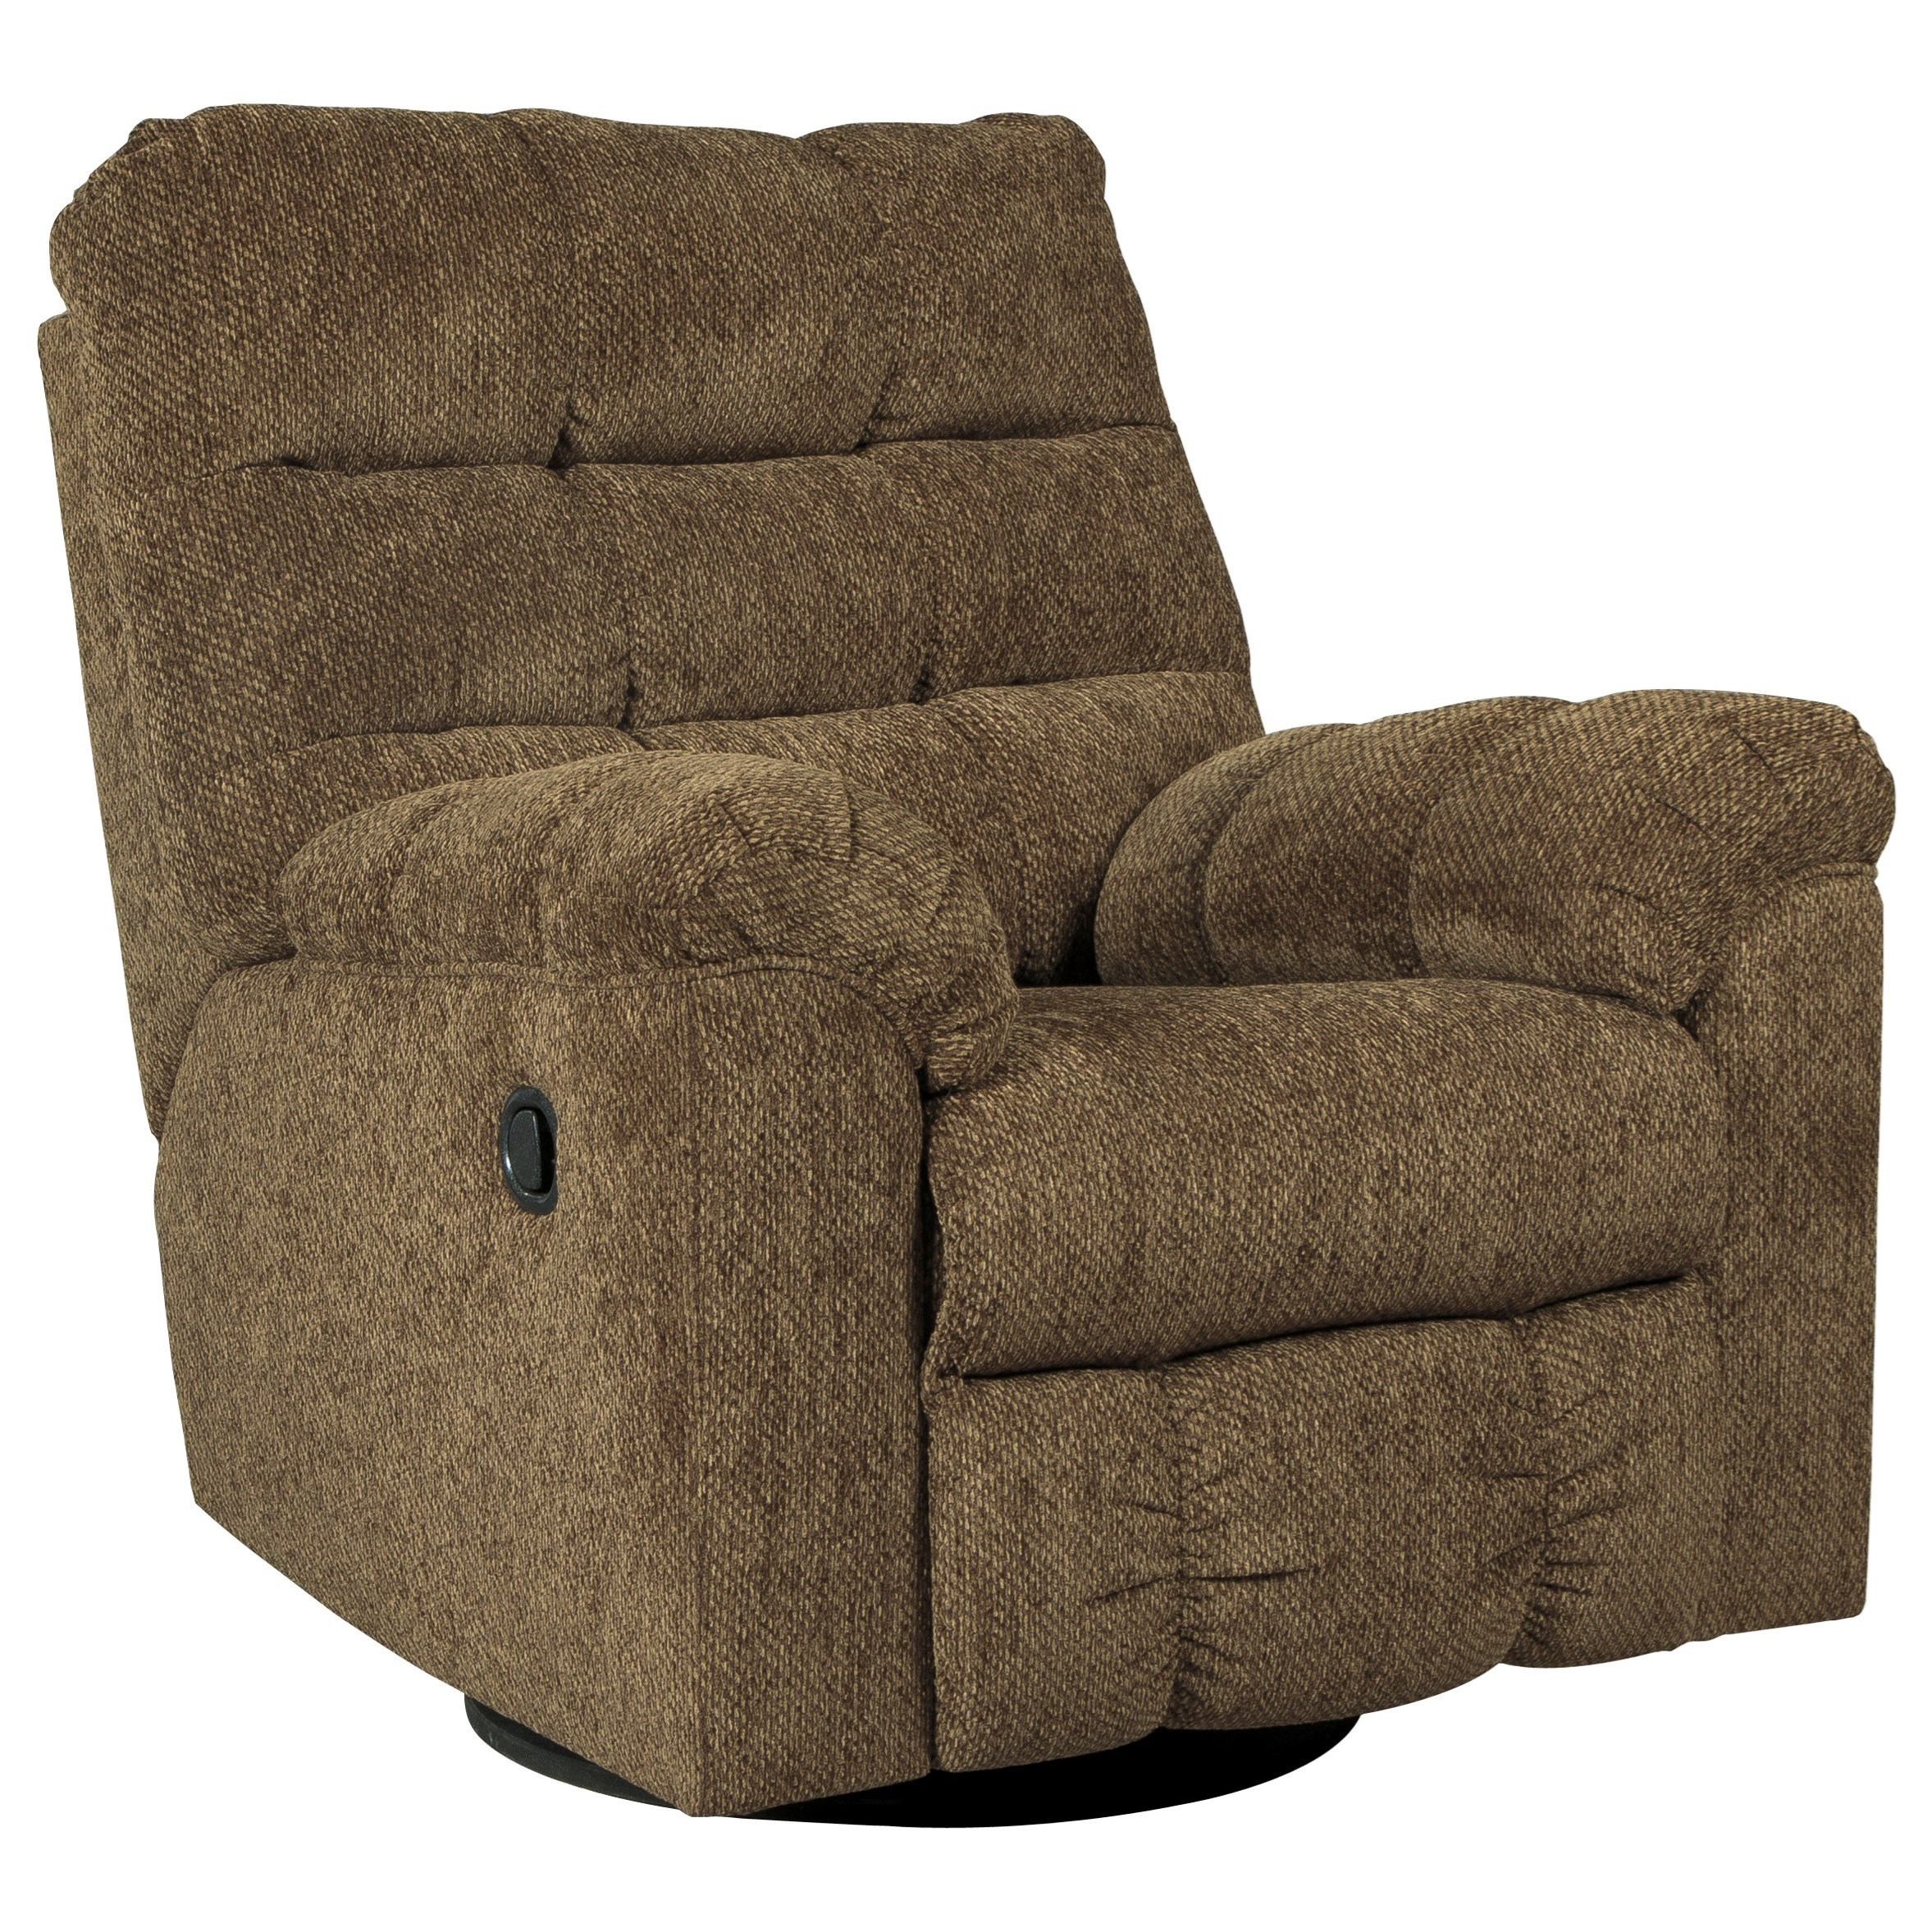 Benchcraft Antwan Swivel Rocker Recliner - Item Number: 4820028